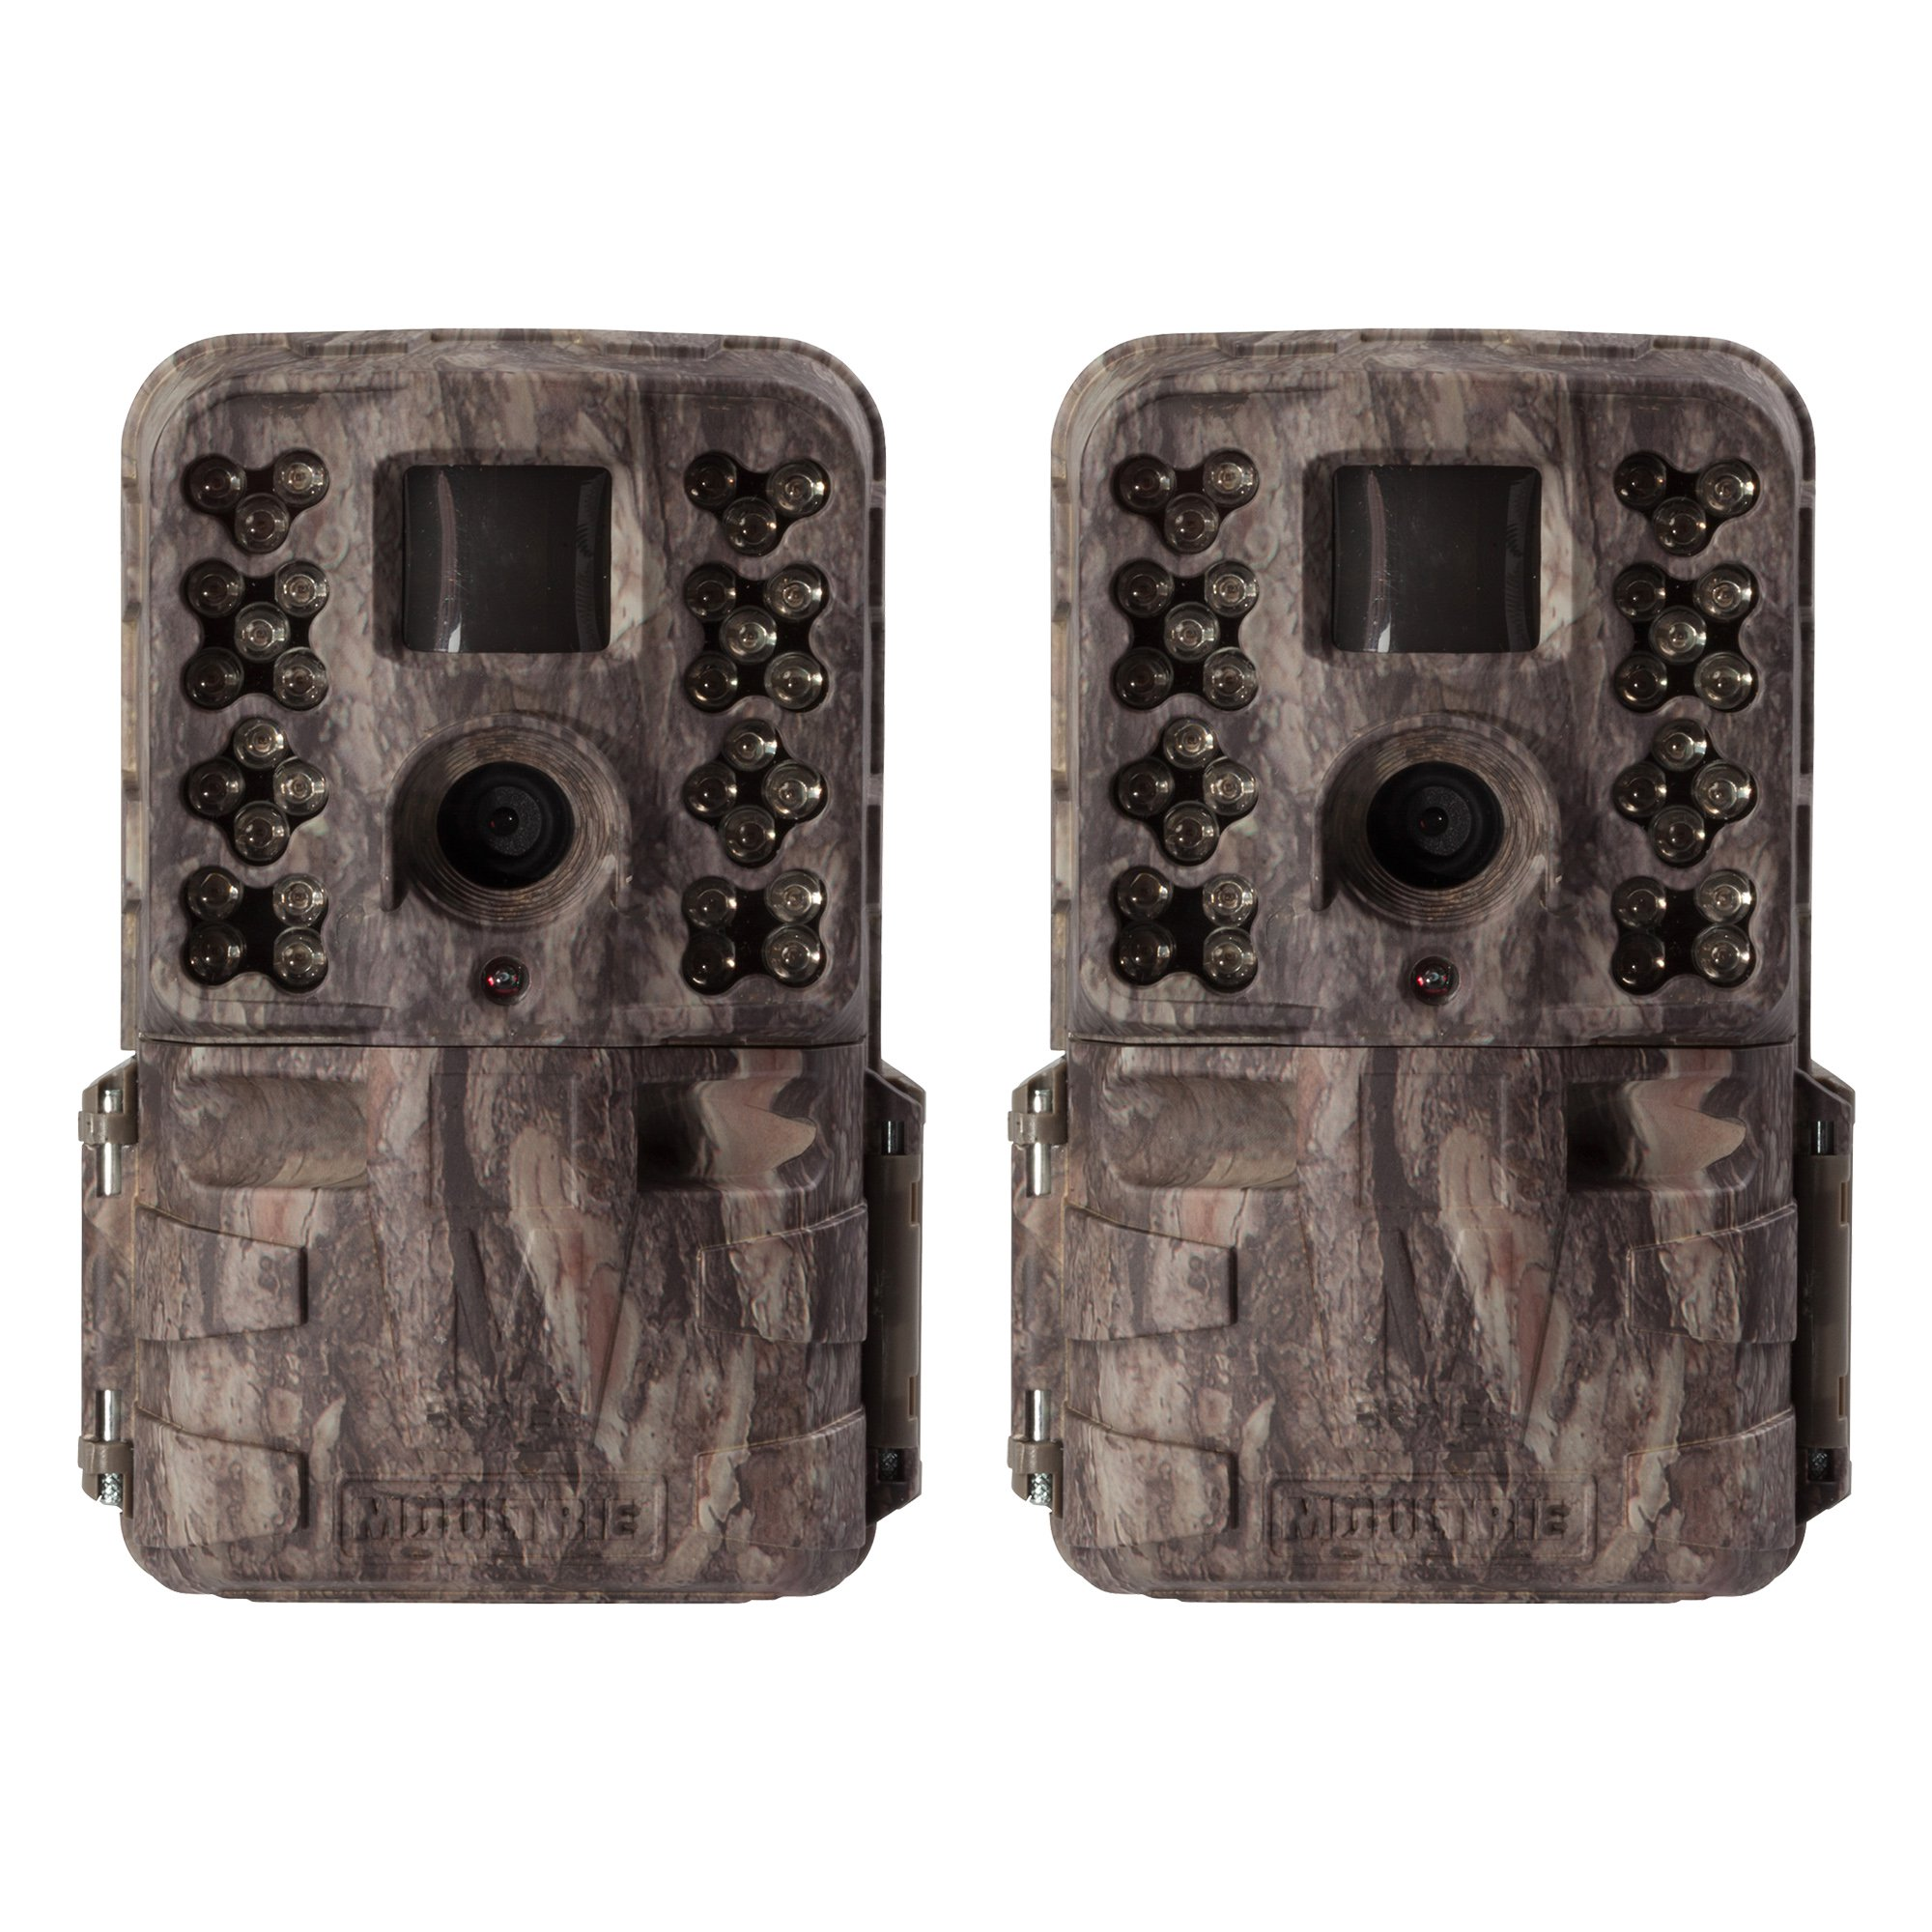 Moultrie M-40i 16MP 80' FHD Video No Glow Game Trail Camera, 2 Pack | MCG-13182